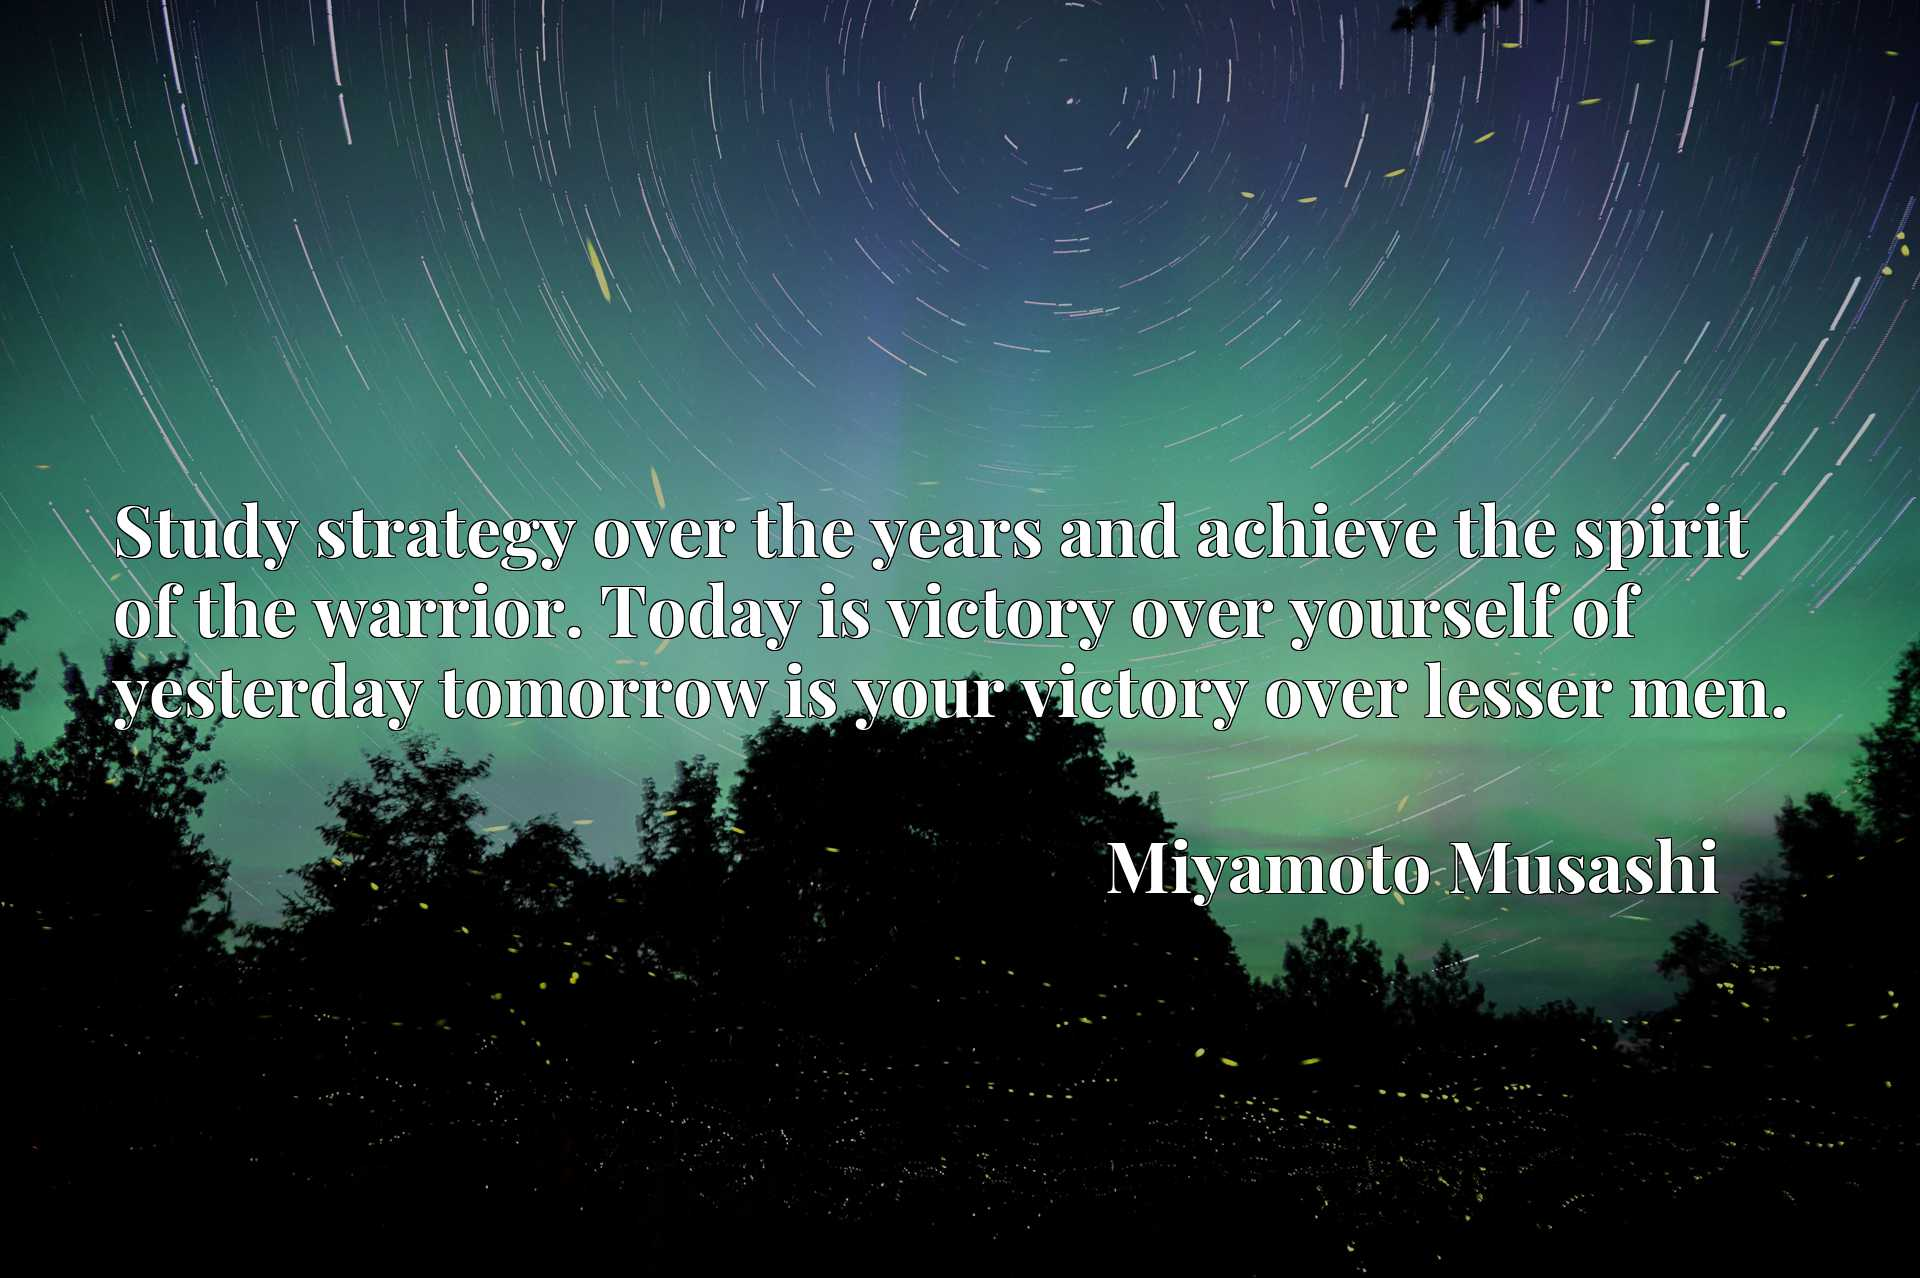 Study strategy over the years and achieve the spirit of the warrior. Today is victory over yourself of yesterday tomorrow is your victory over lesser men.